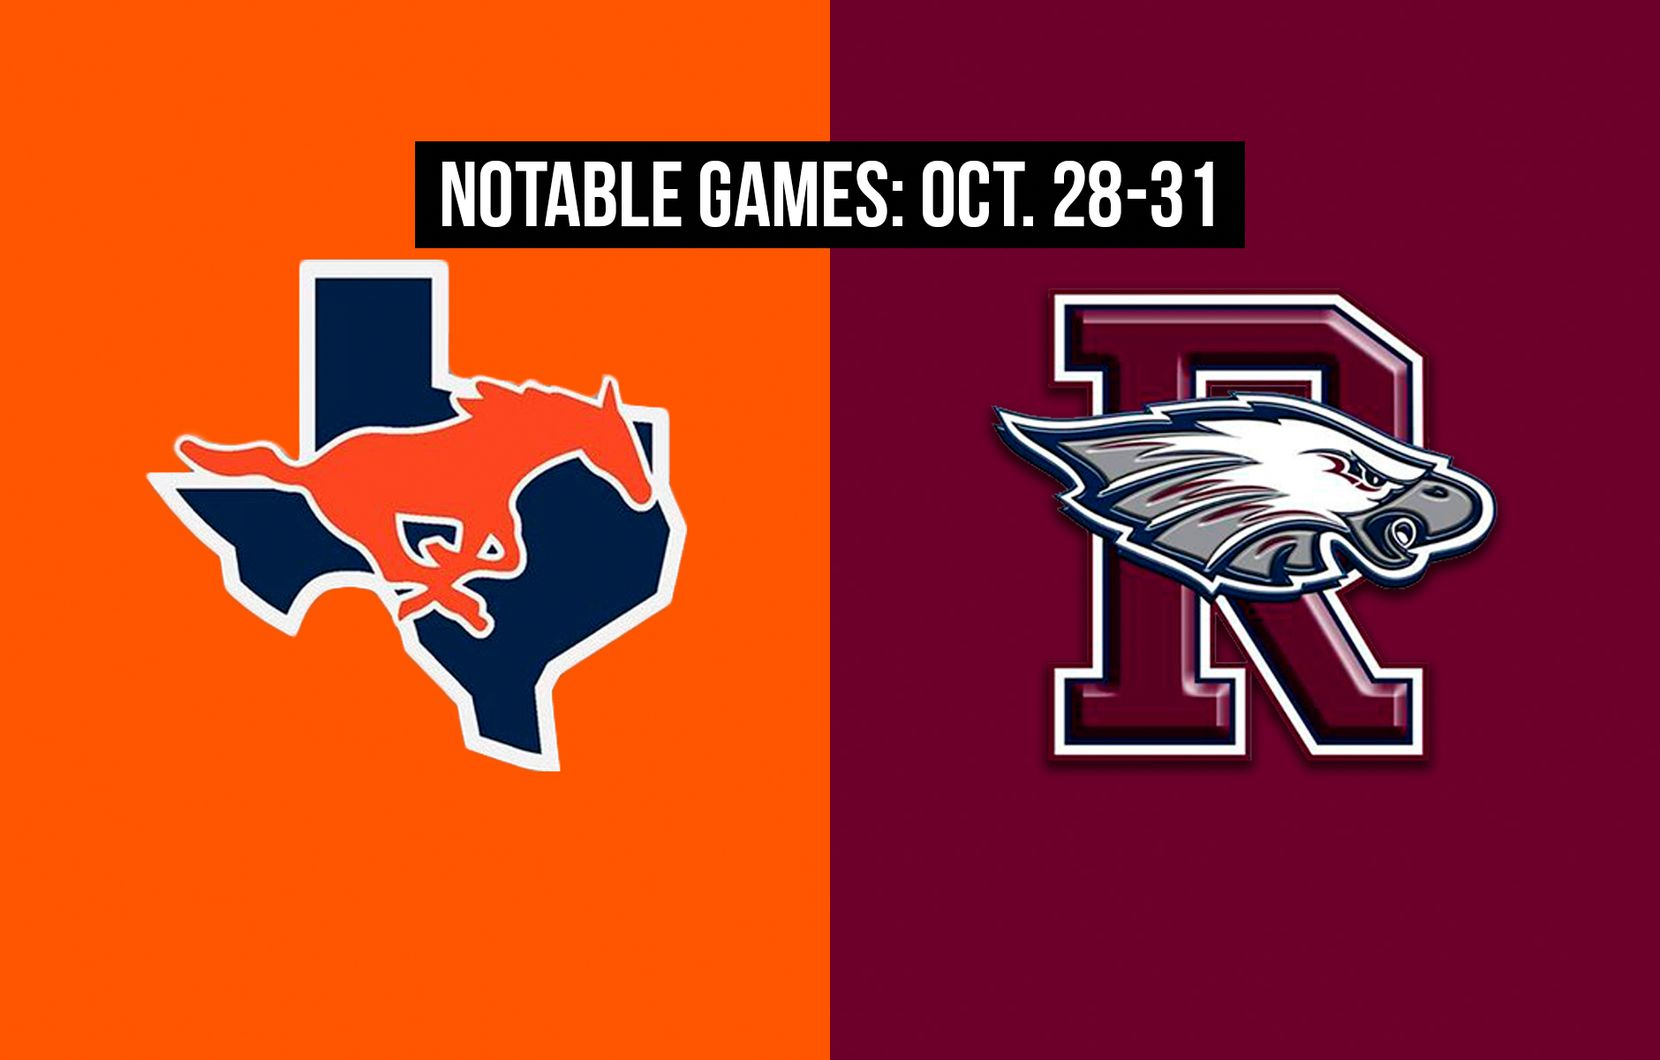 Notable games for the week of Oct. 28-31 of the 2020 season: Sachse vs. Rowlett.